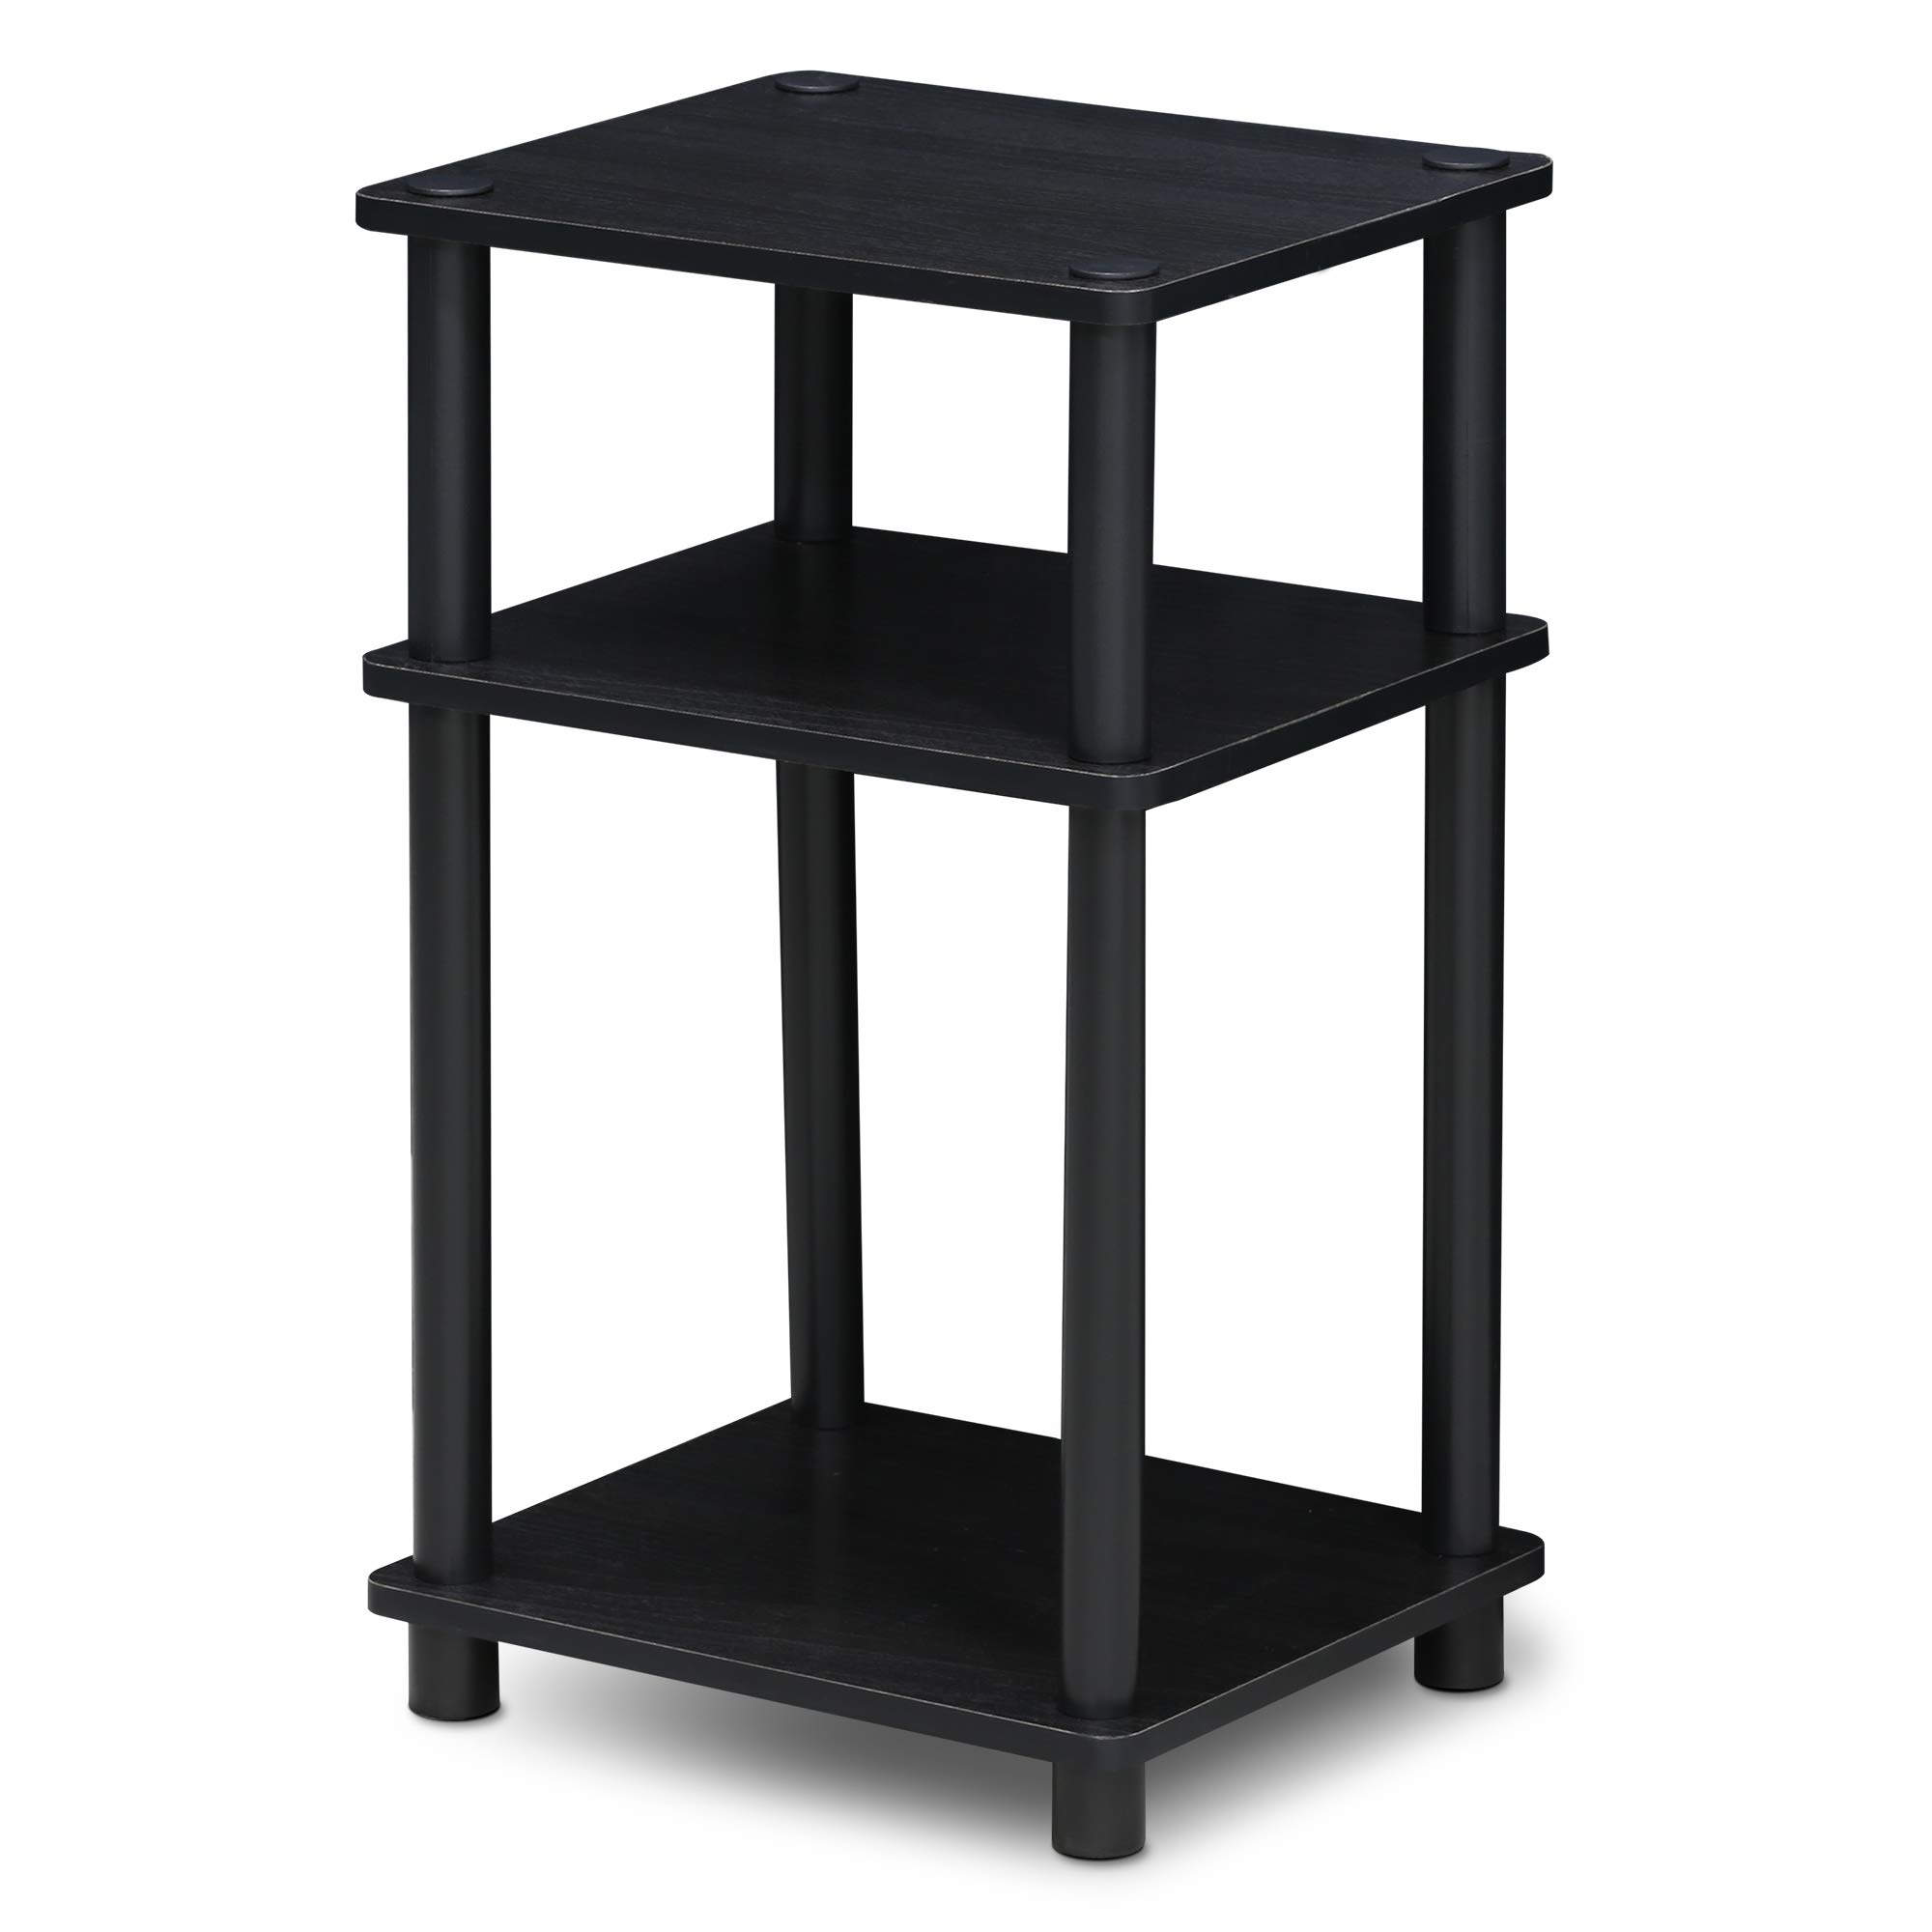 Furinno 11087AM/BK Just 3-Tier End Table, 1-Pack, Americano/Black by Furinno